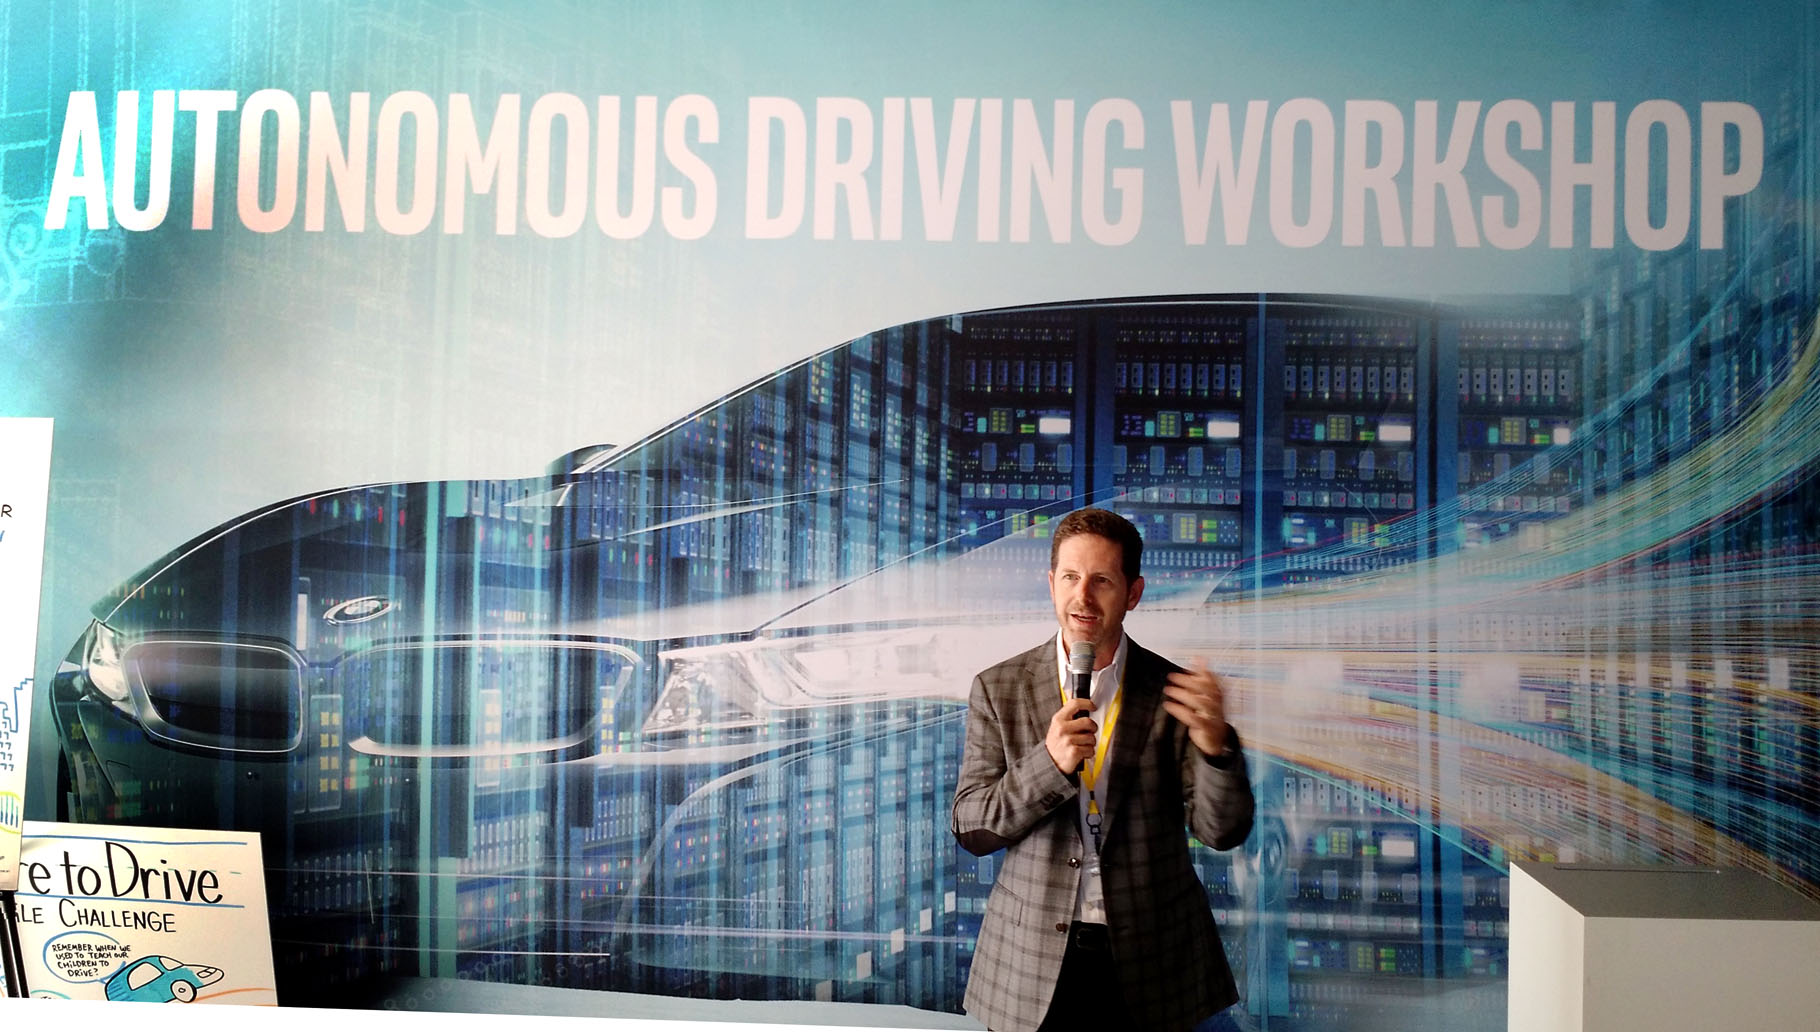 Doug Davis, Senior vice president and general manager of Intel's Automated Driving Group, discusses his mission to bring Intel autonomous driving technology to the masses